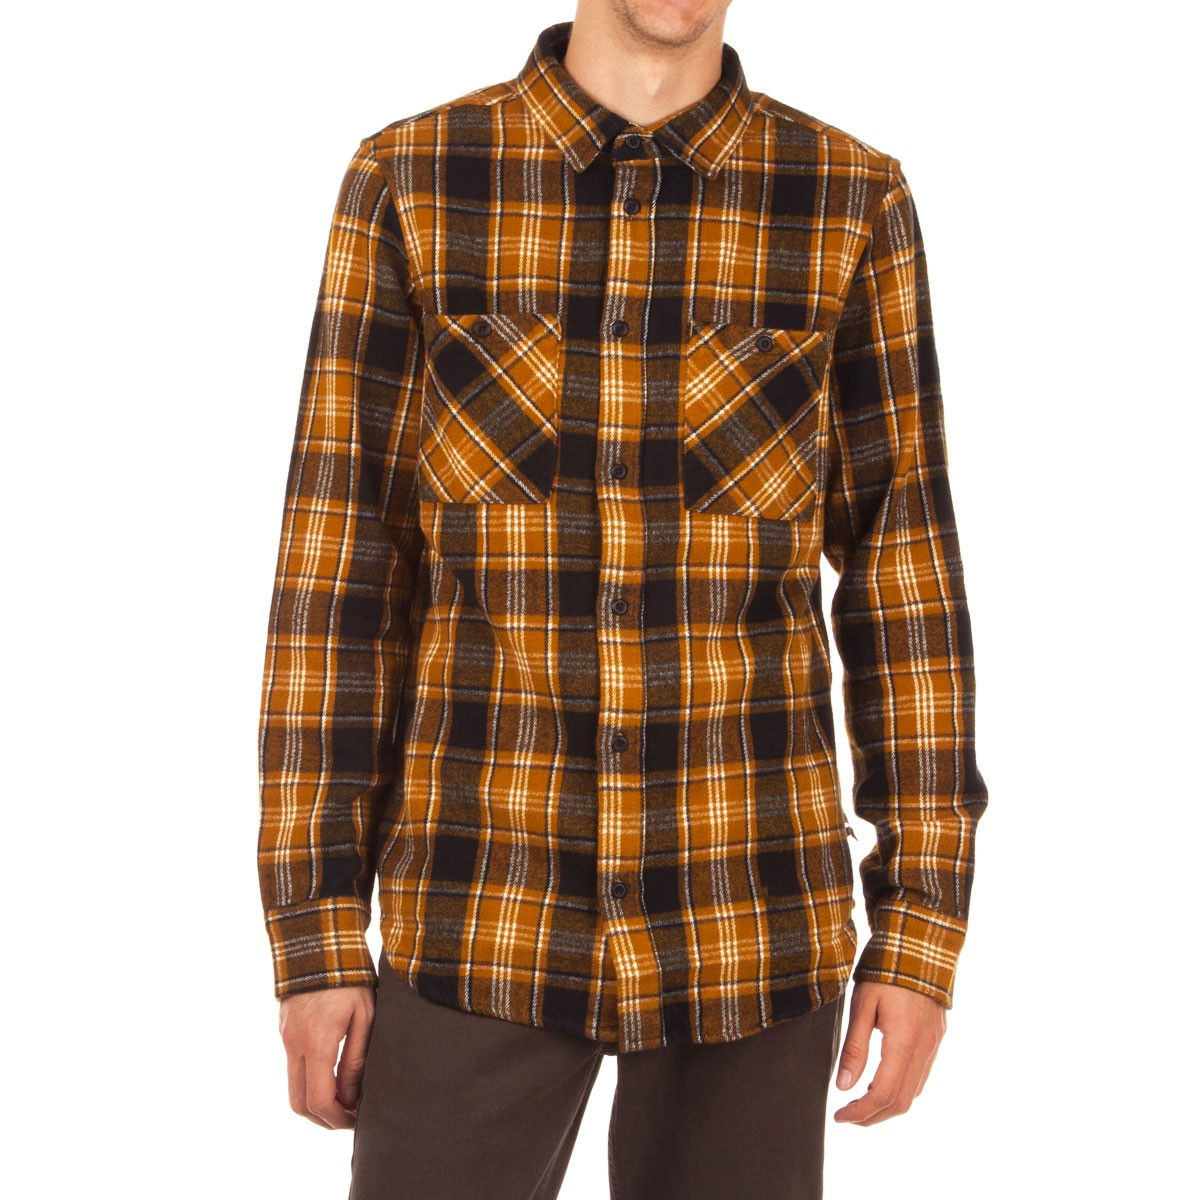 Altamont Binary Long Sleeve Flannel Shirt - Black